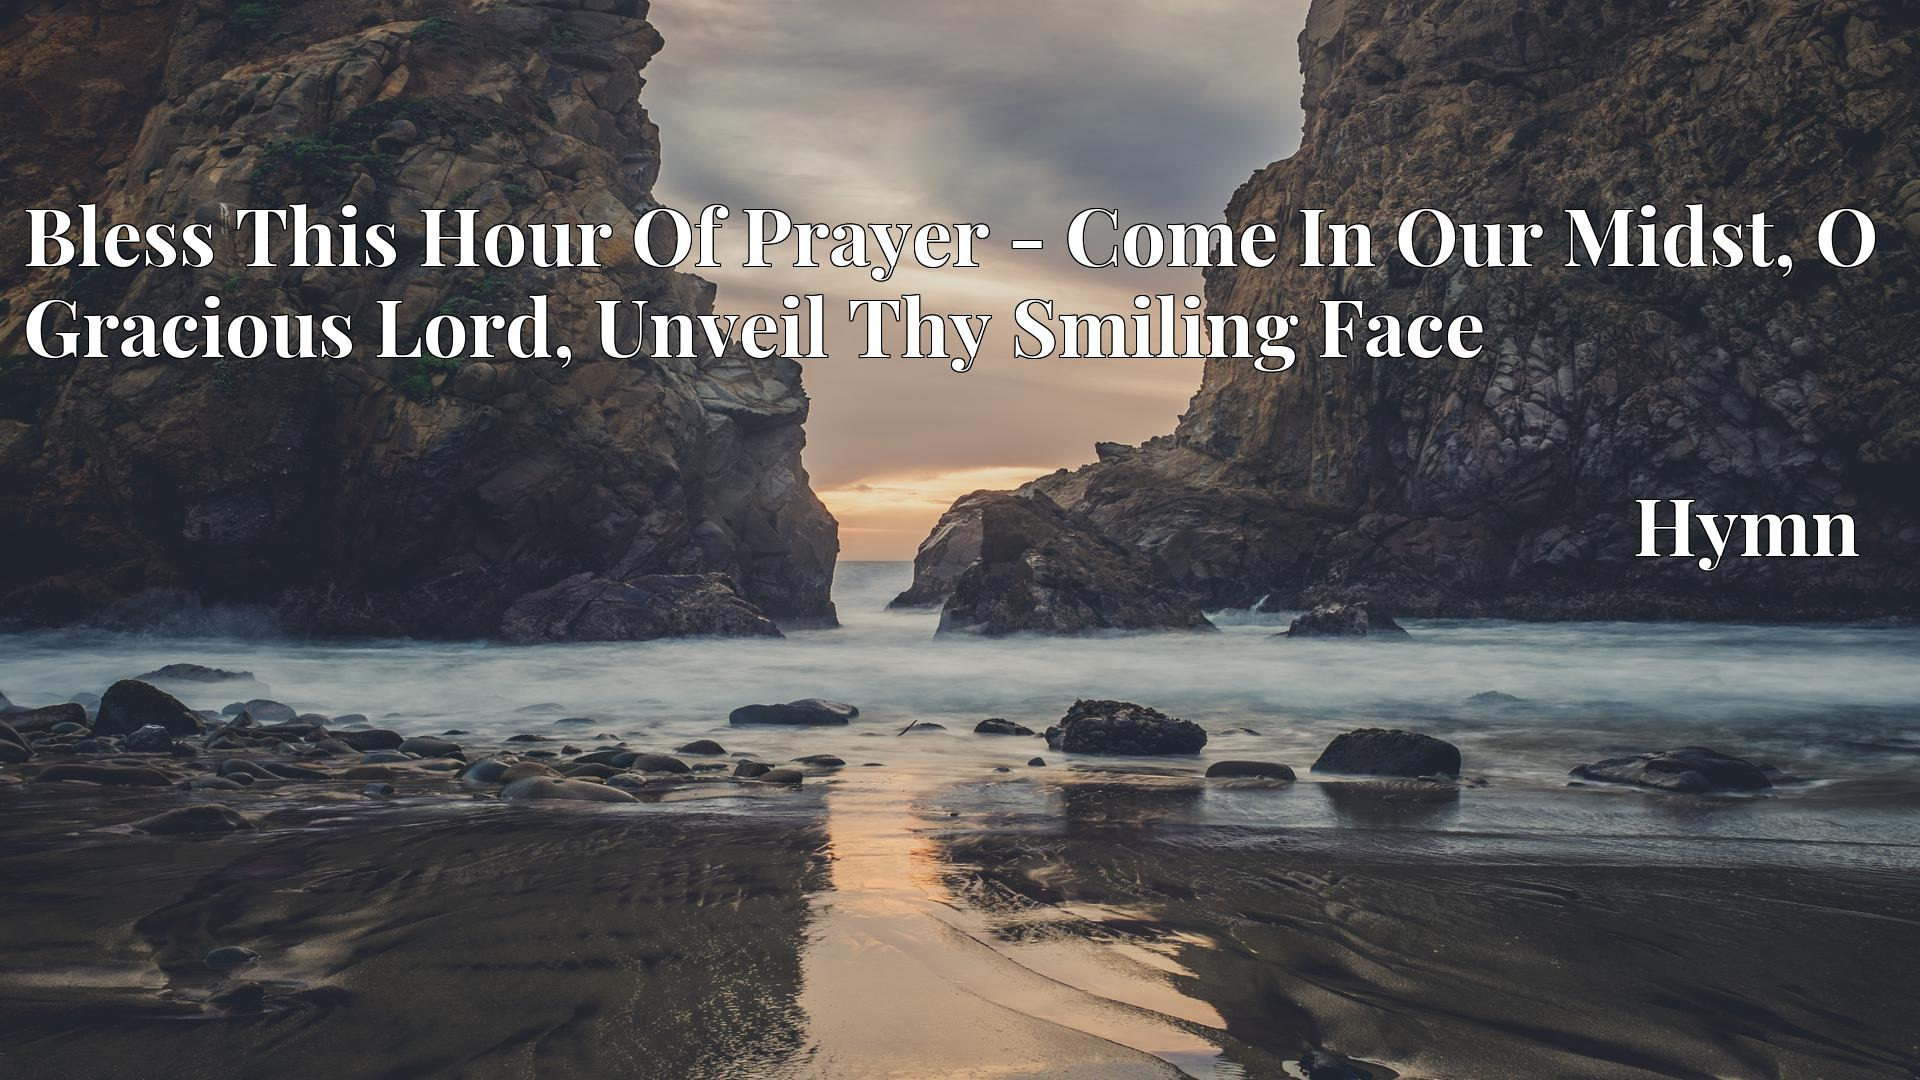 Bless This Hour Of Prayer - Come In Our Midst, O Gracious Lord, Unveil Thy Smiling Face - Hymn